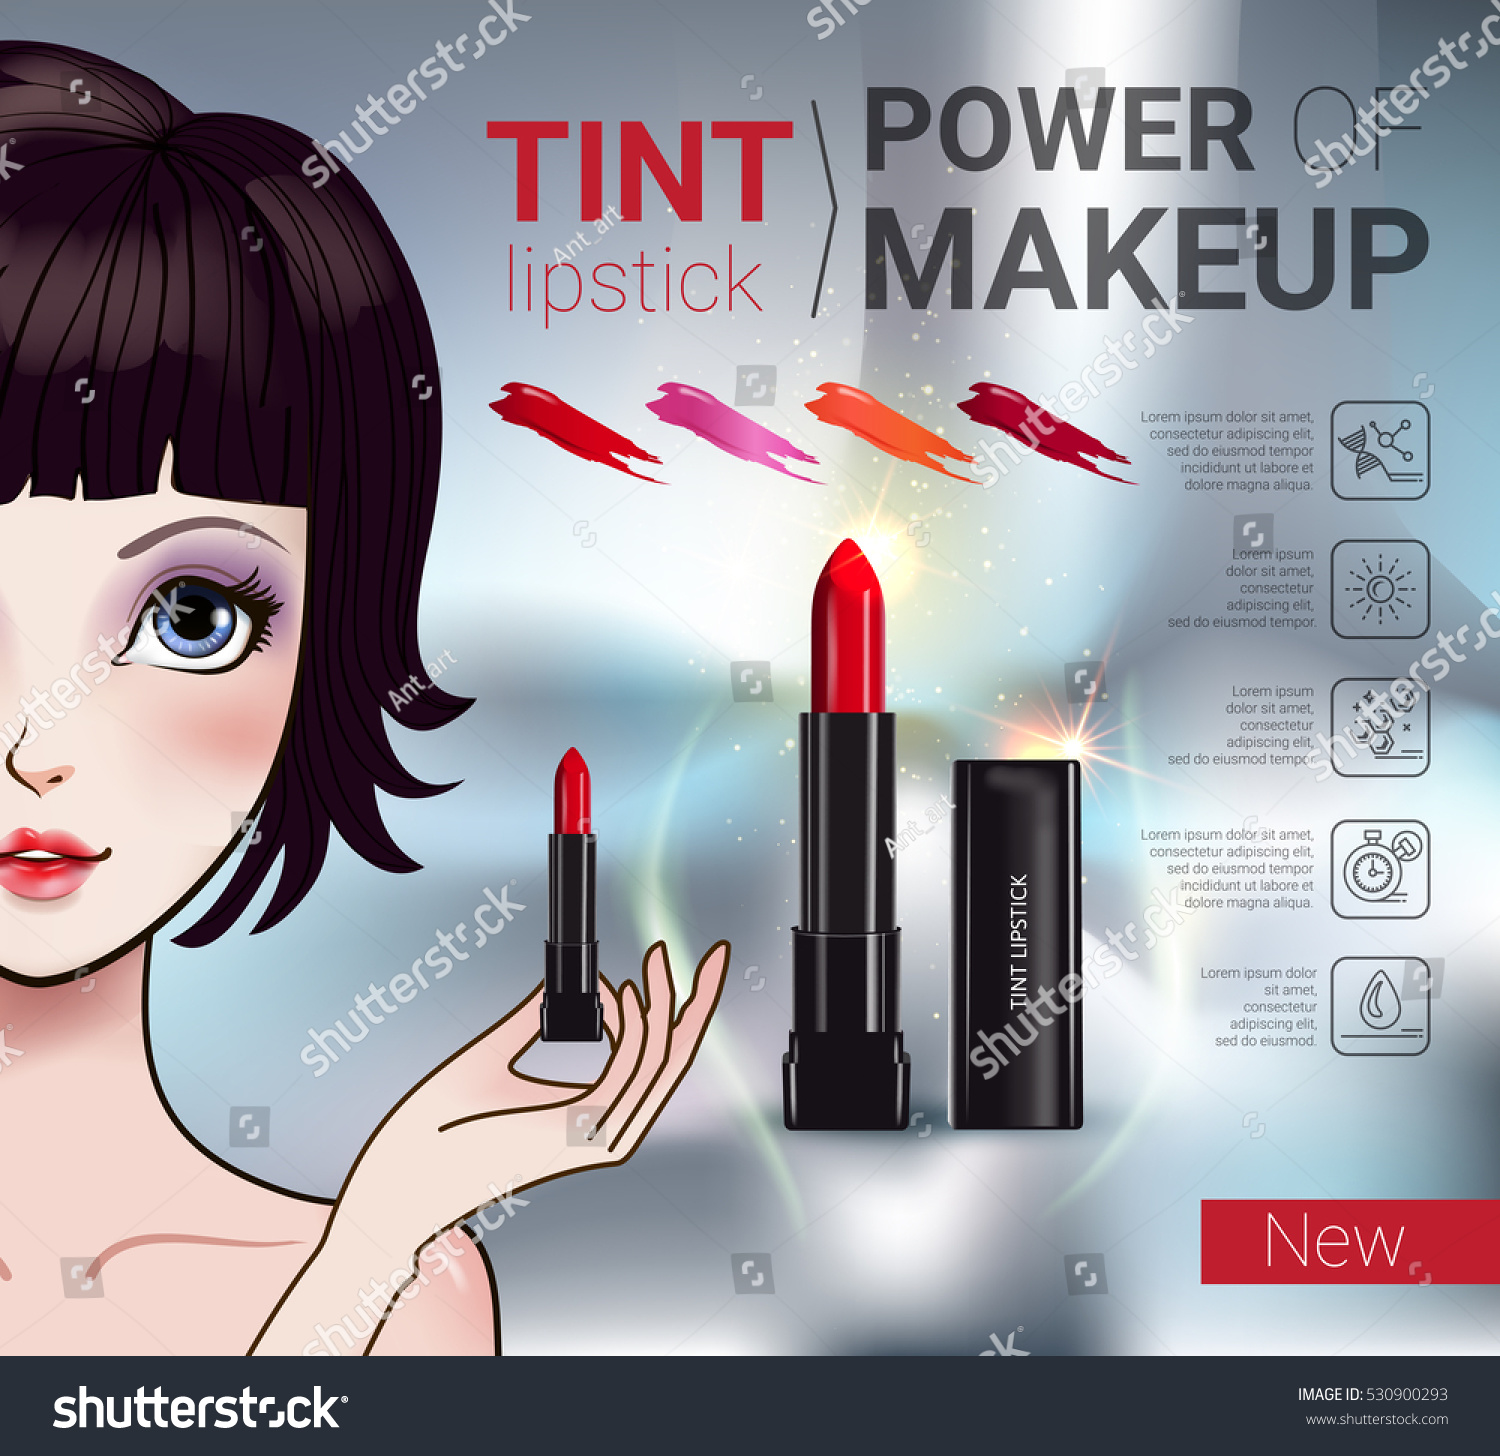 0d8d9e5e19a Vector Illustration with Manga style girl and makeup lipstick product.